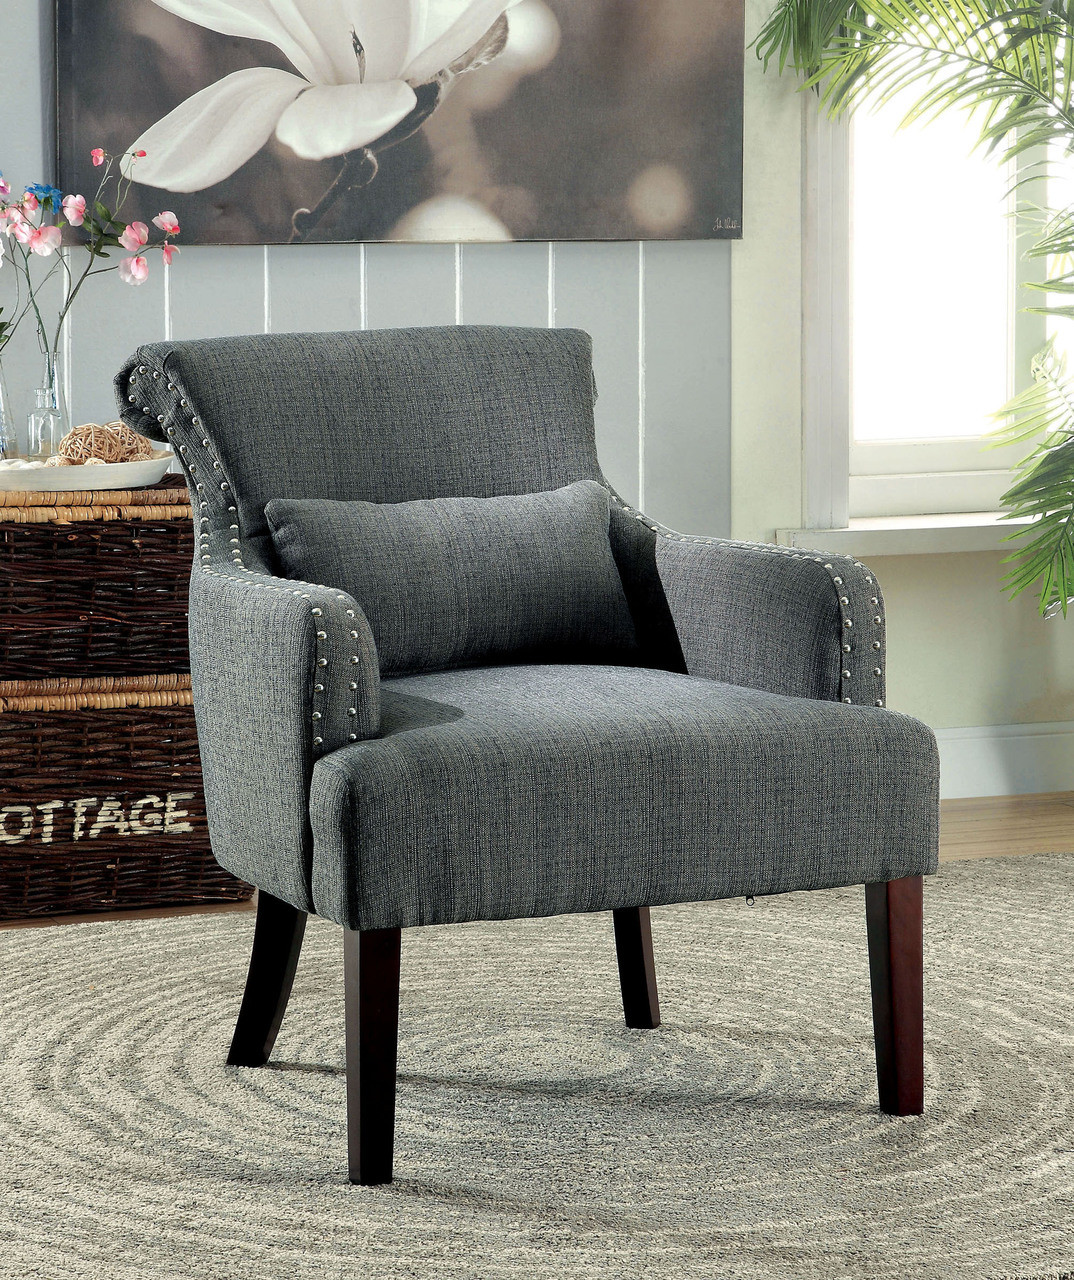 accent chair gray eames design within reach agalva fabric